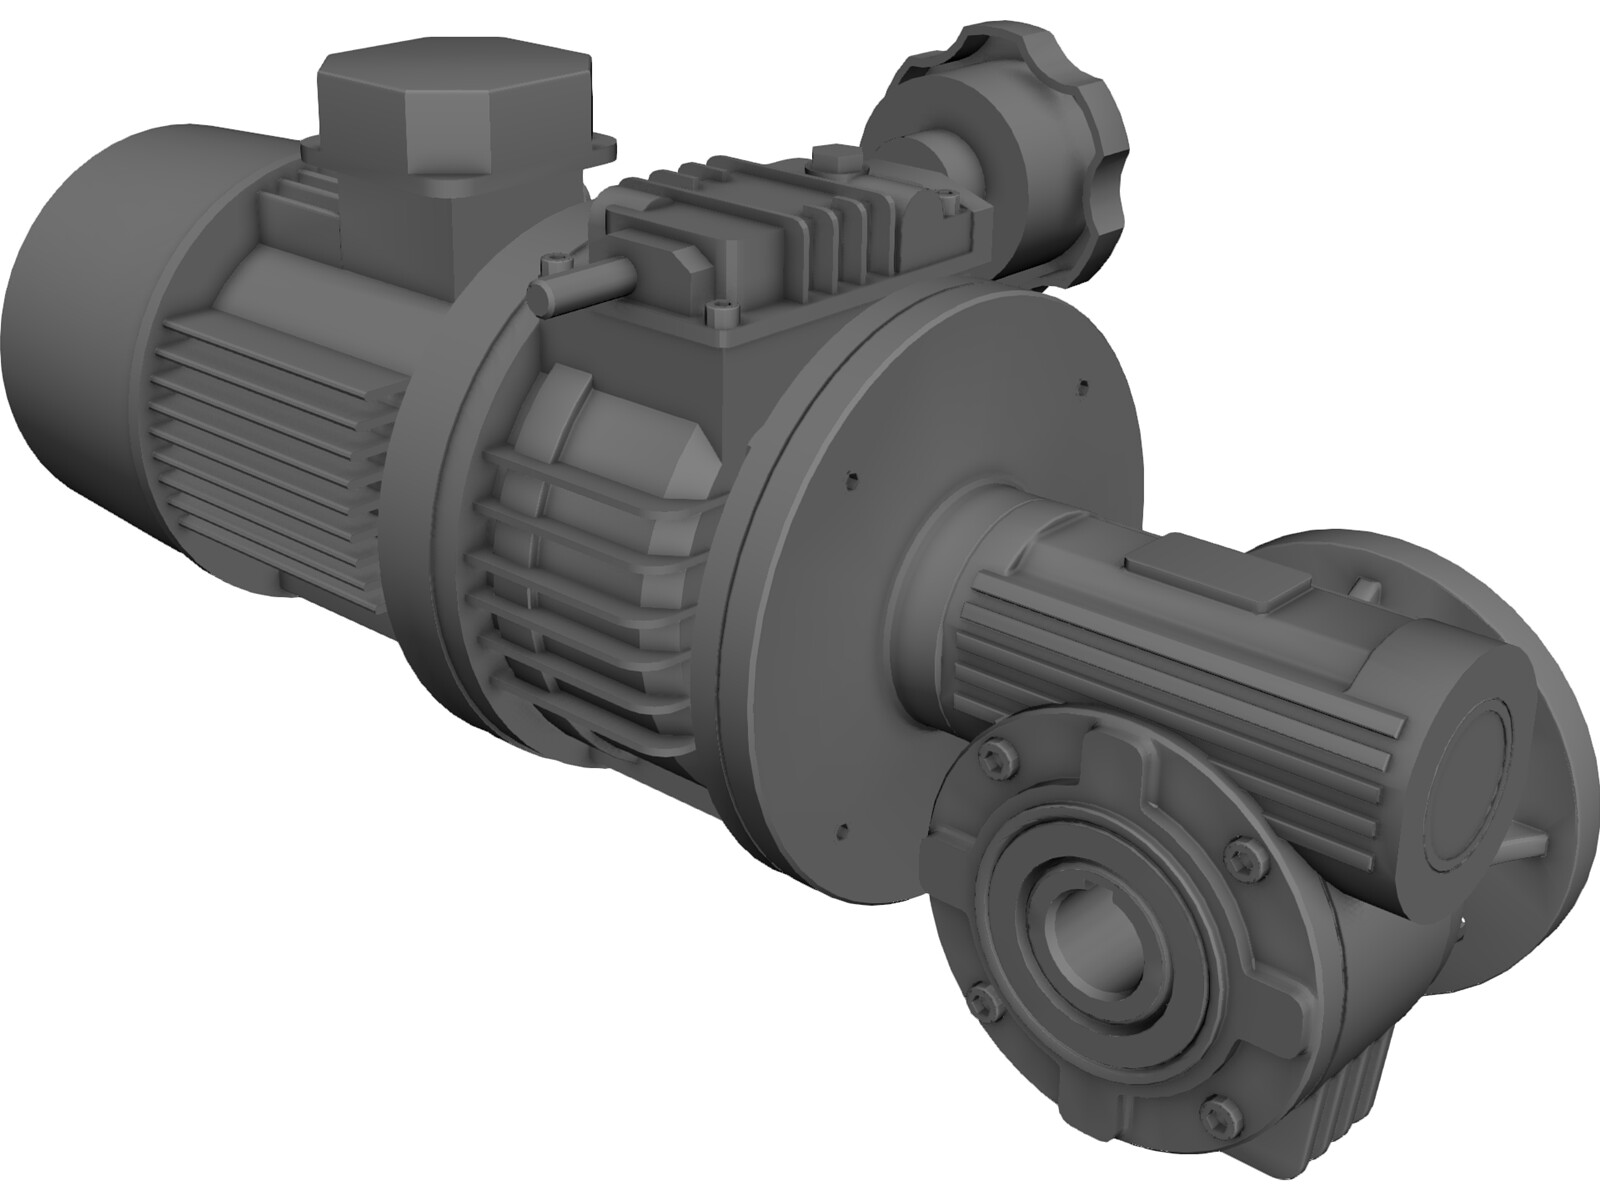 Motor Reductor 3d Cad Model Download 3d Cad Browser